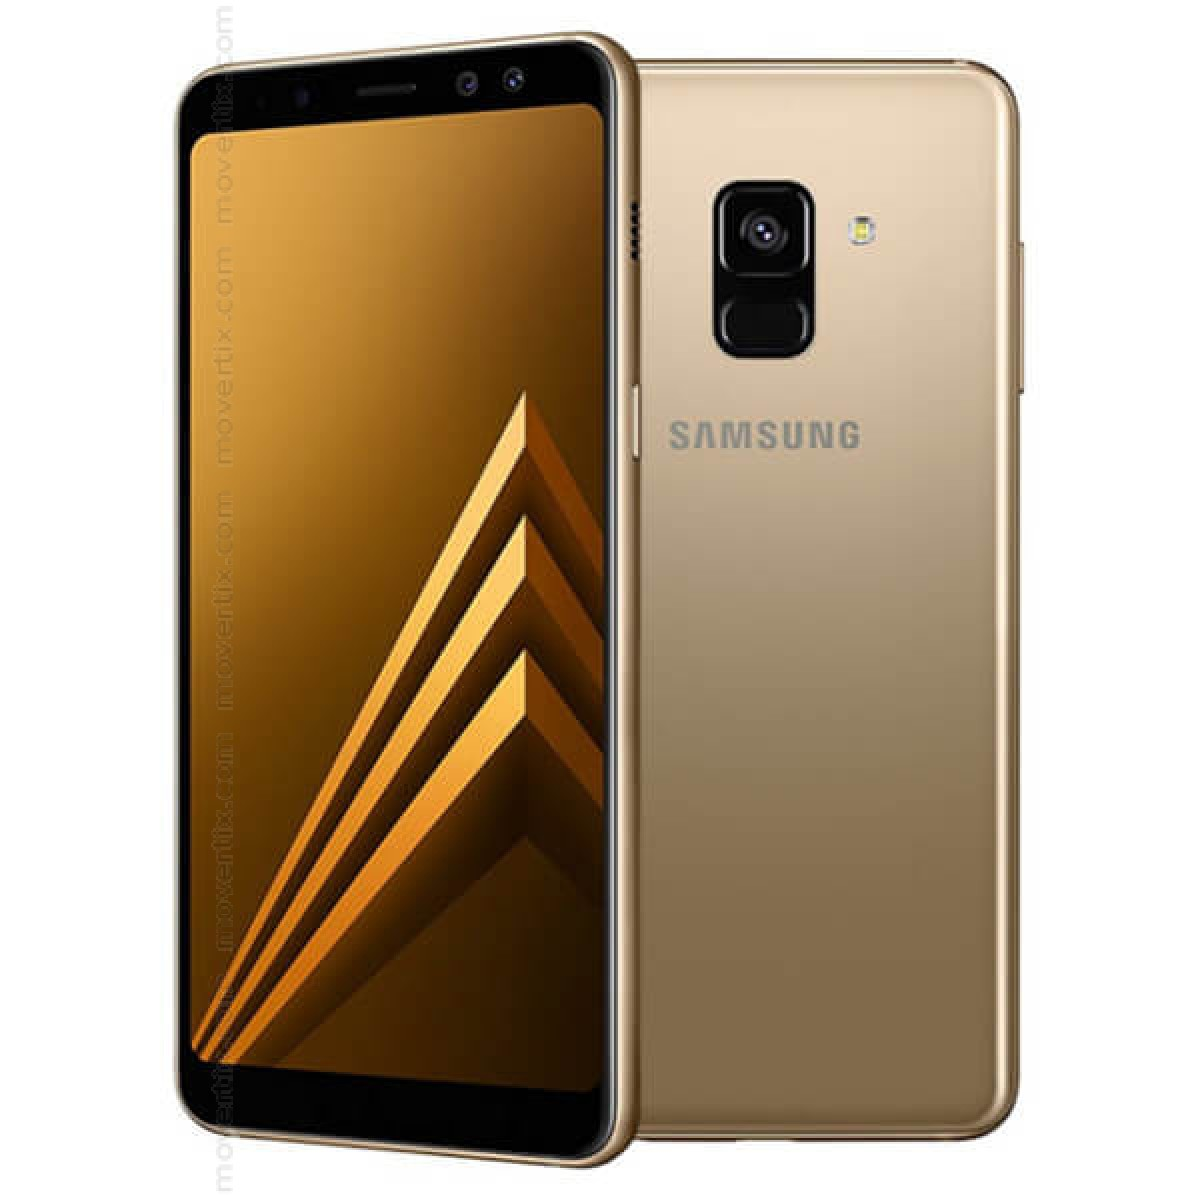 2a839c92dec5e2 With the Samsung Galaxy A8 (2018) Dual SIM in gold color, Samsung s  mid-range goes one step further. With a 5.6-inch Super AMOLED display, 16MP  cameras, ...